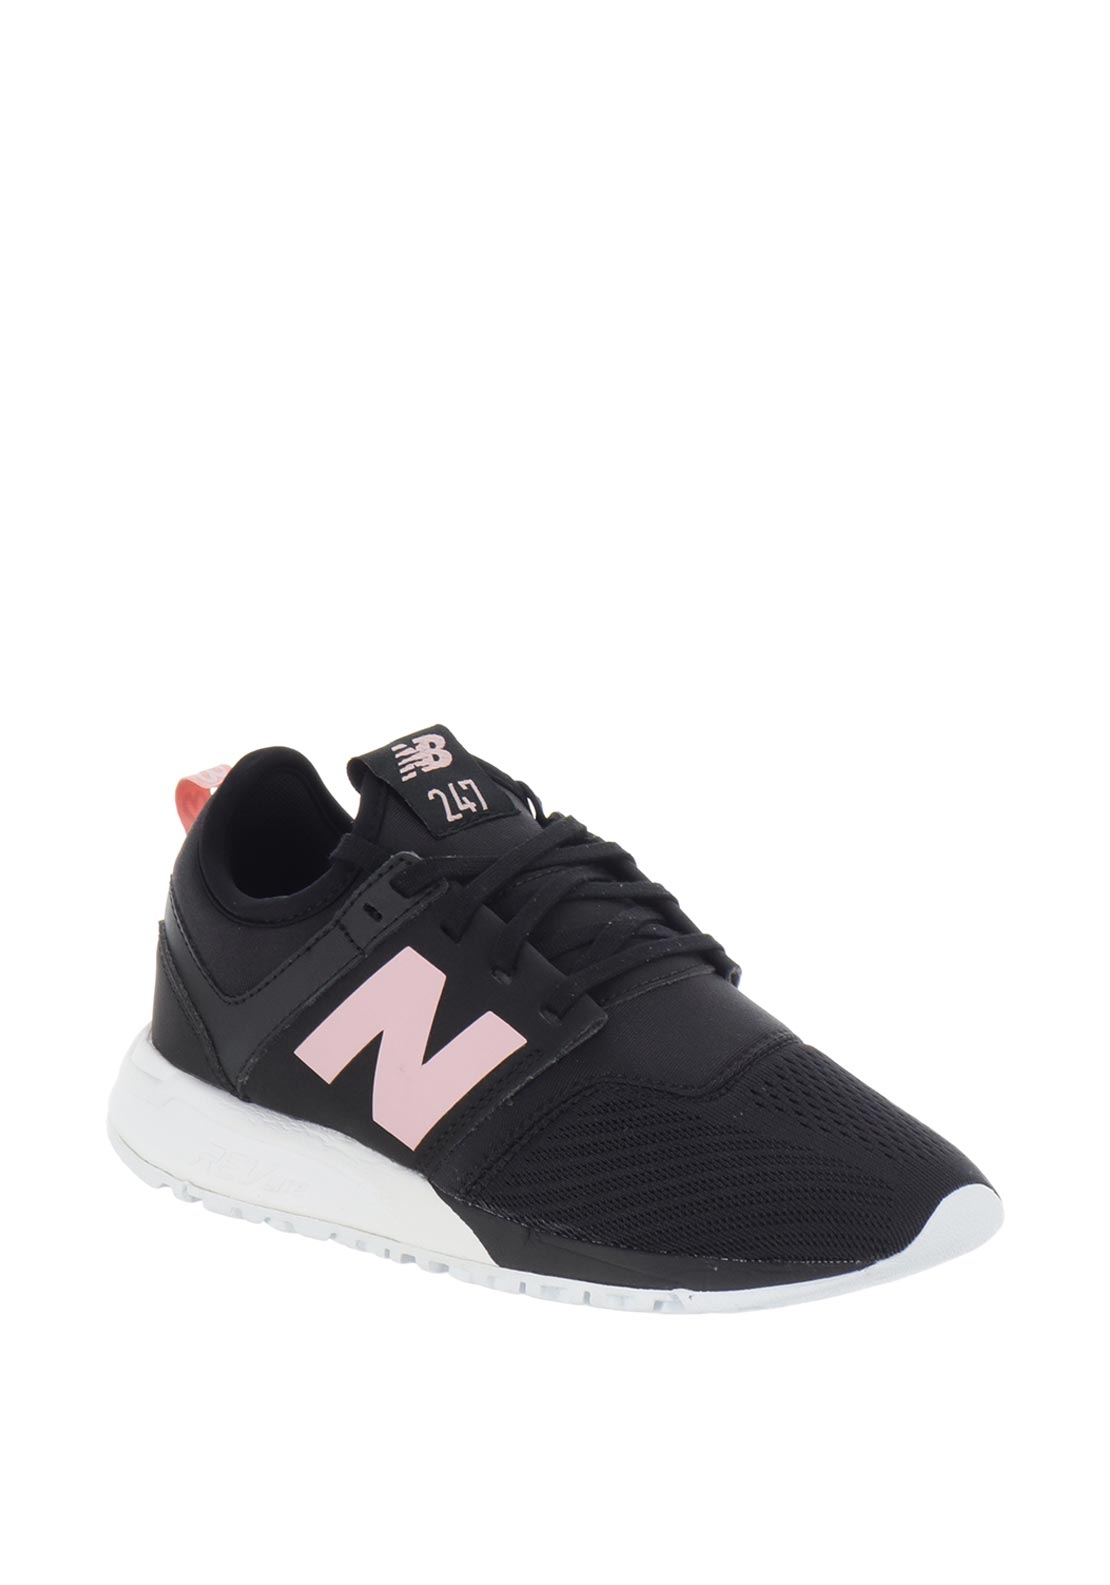 New Balance Womens 247 Trainers, Black